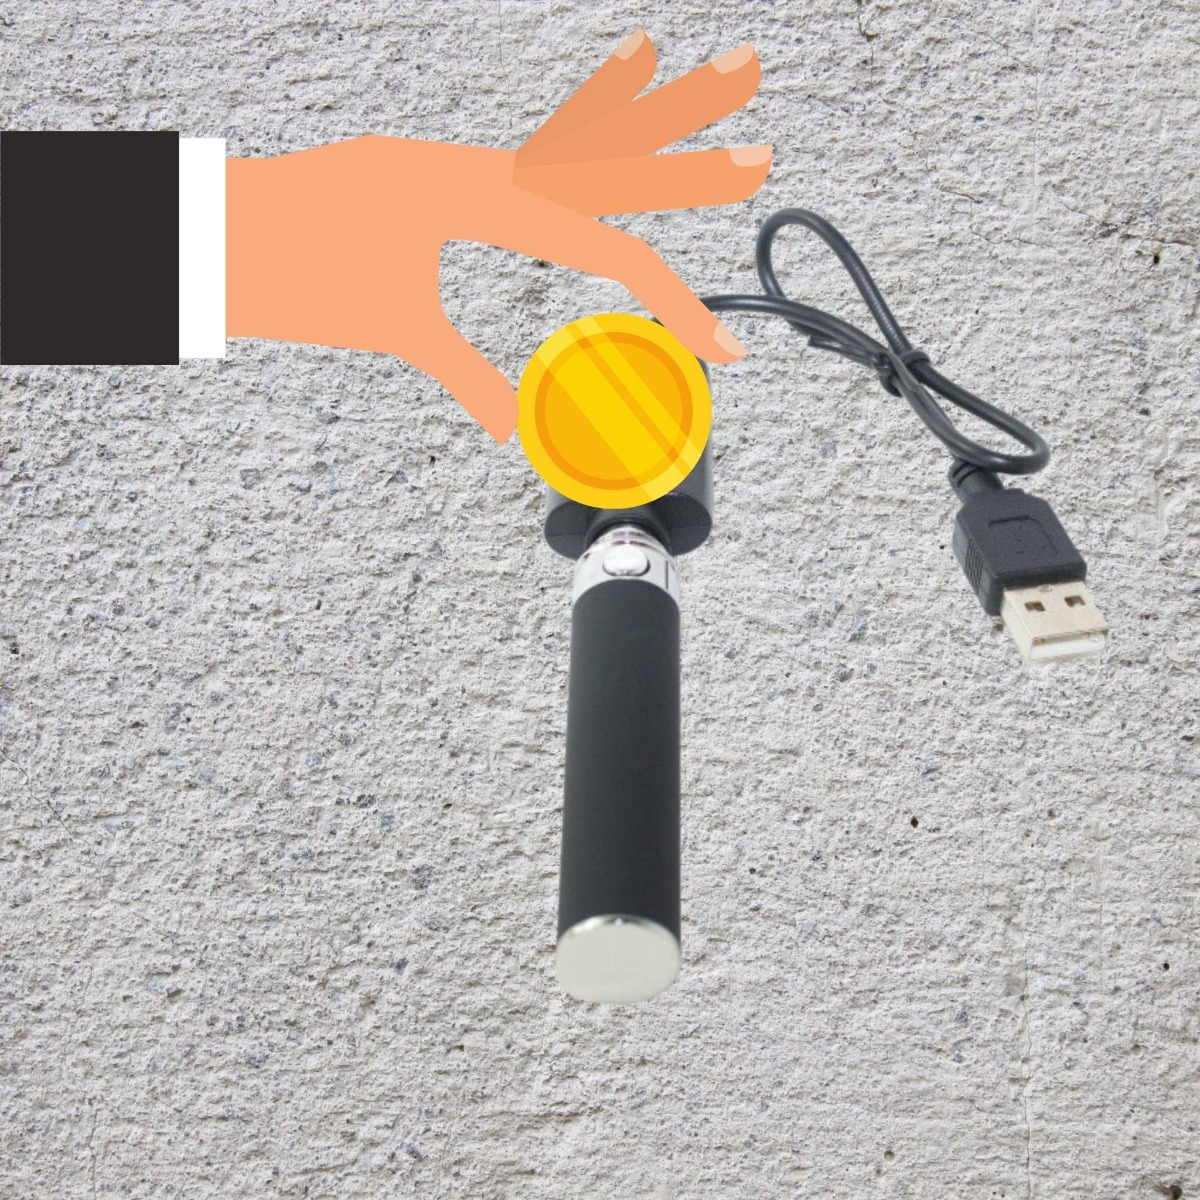 coin being placed onto a vaporizer with grey background